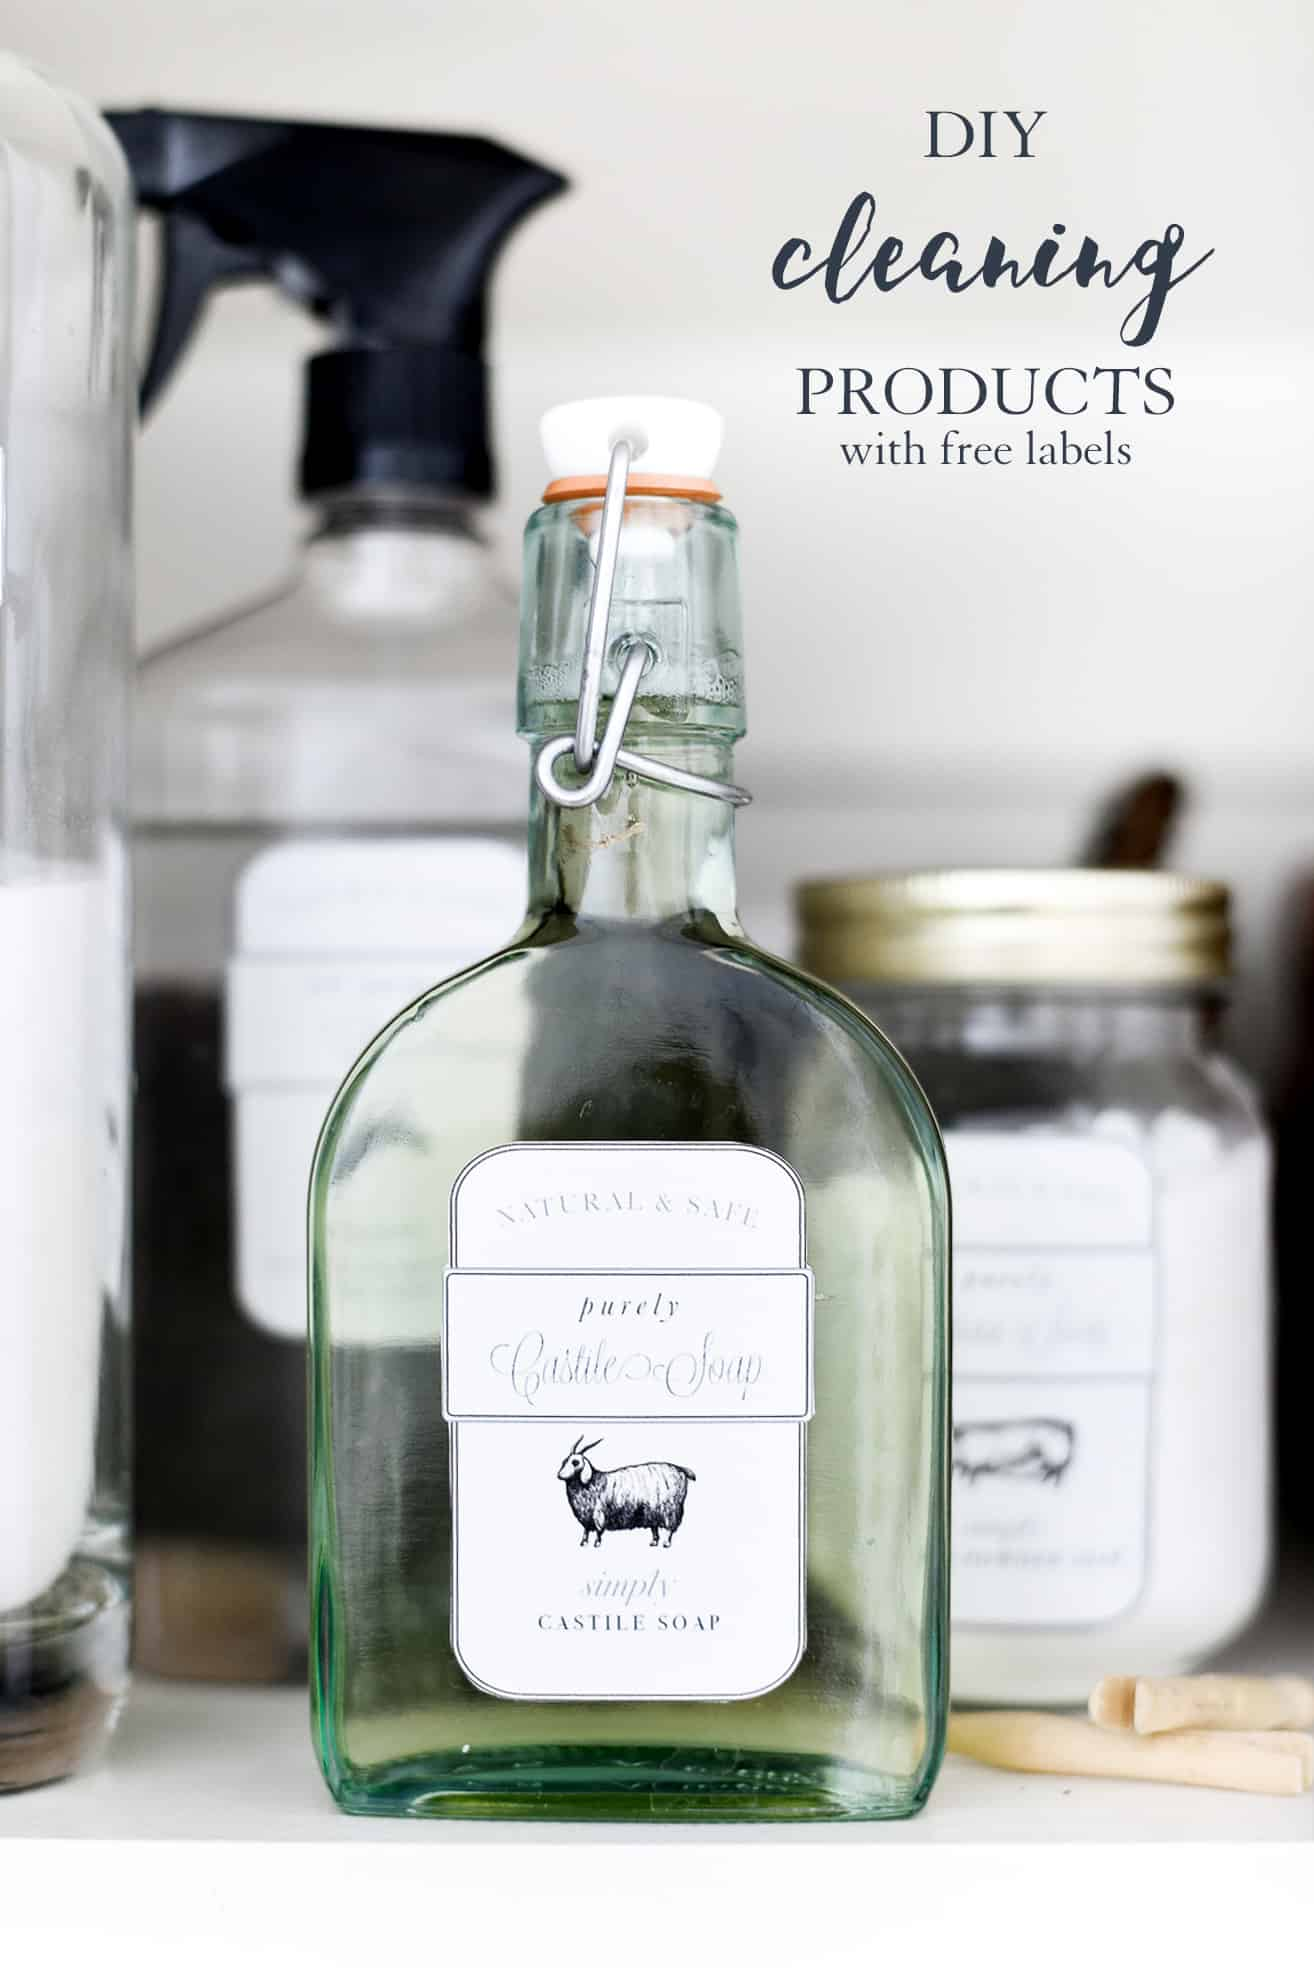 diy cleaning products with free printable labels with farm animals